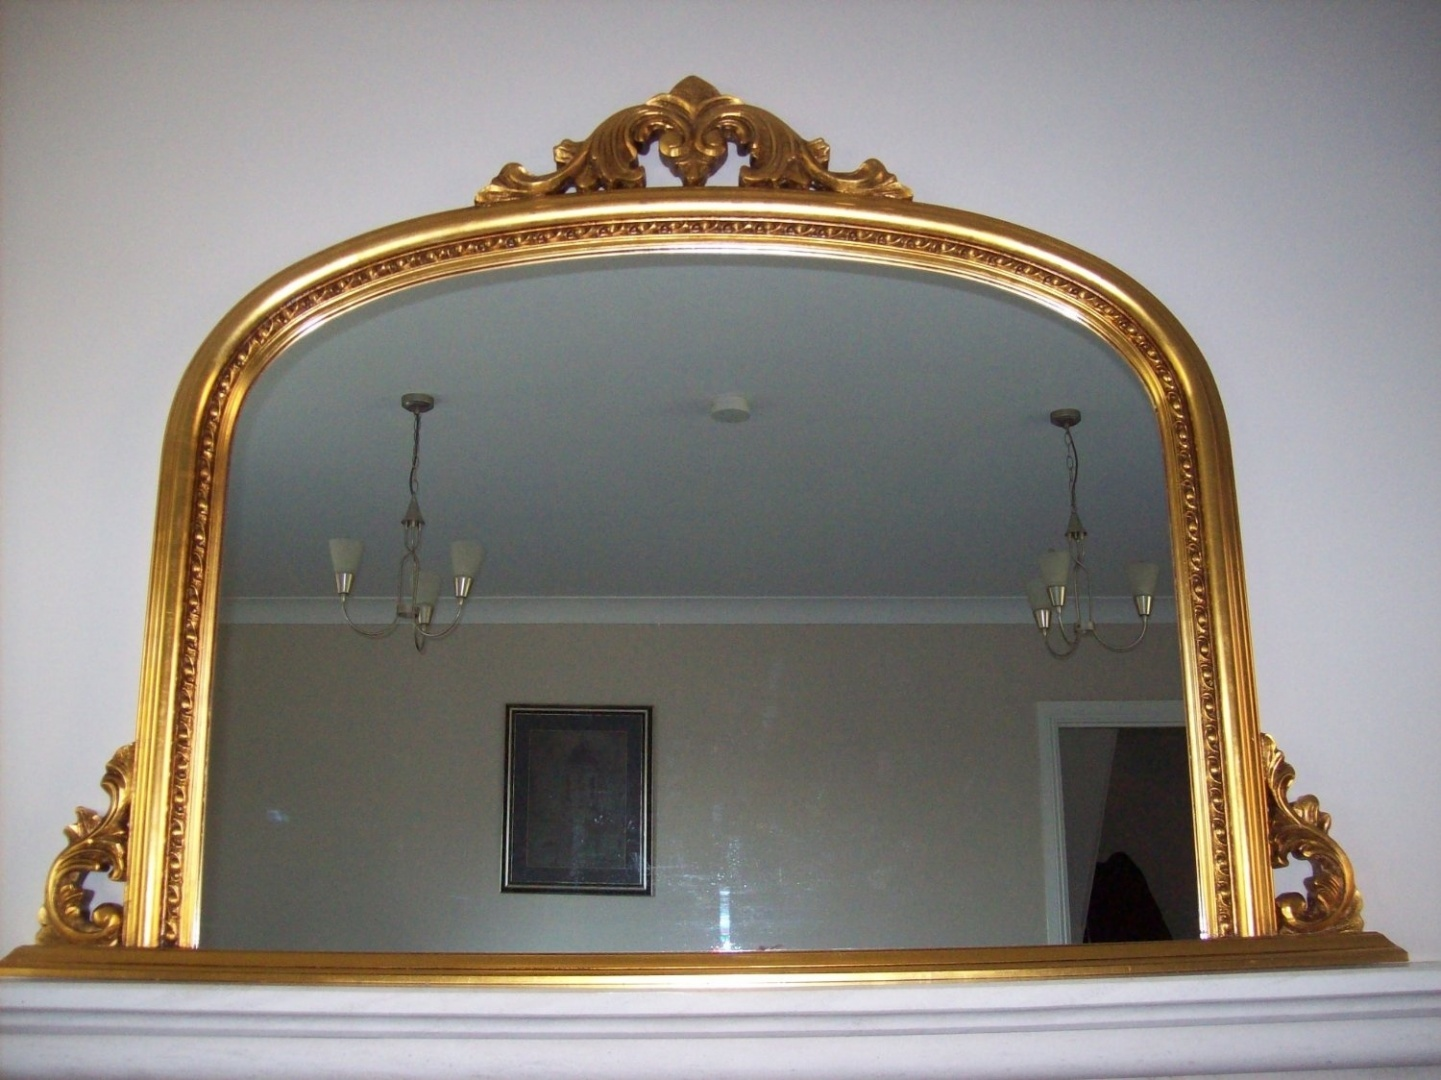 Classic French Inspired Antique Gold Overmantle Mirror With Elegant Ornate Frame Complete With Premium Quality Pilkington S Glass Standard Size By Shabby Chic Mirrors Shop Online For Homeware In New Zealand